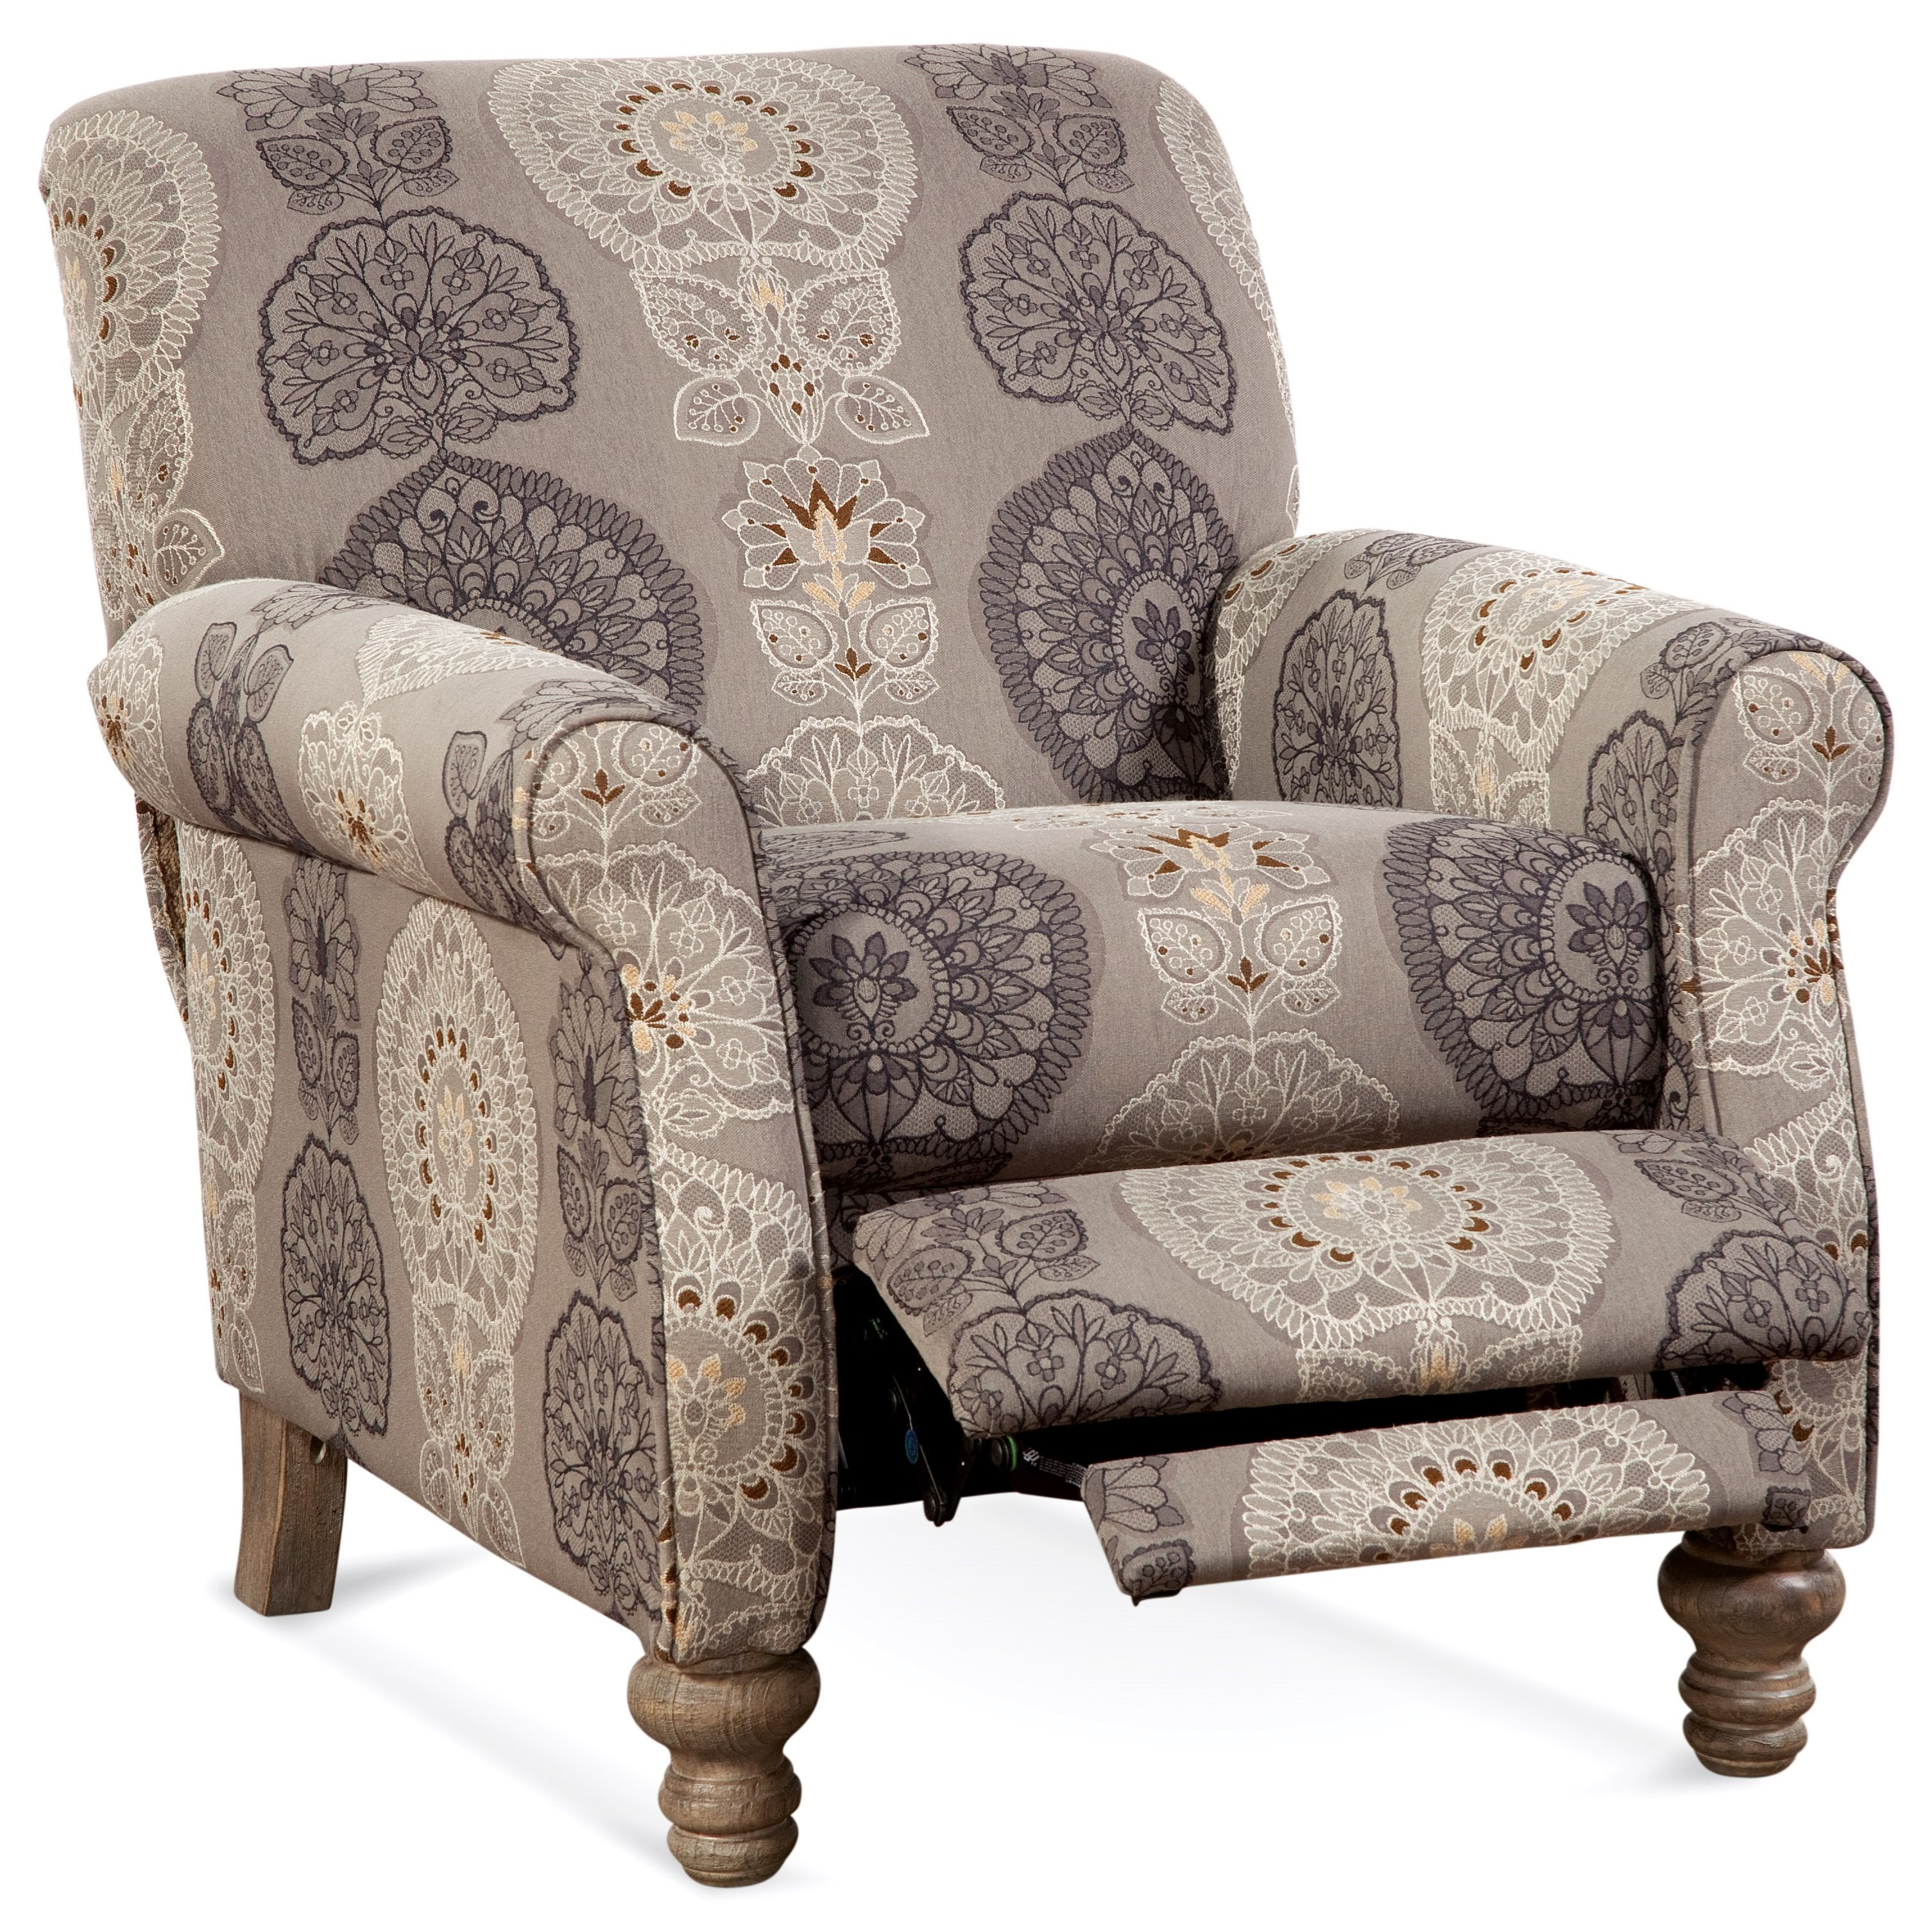 245 High Leg Recliner by Serta Upholstery by Hughes Furniture at Rooms for Less